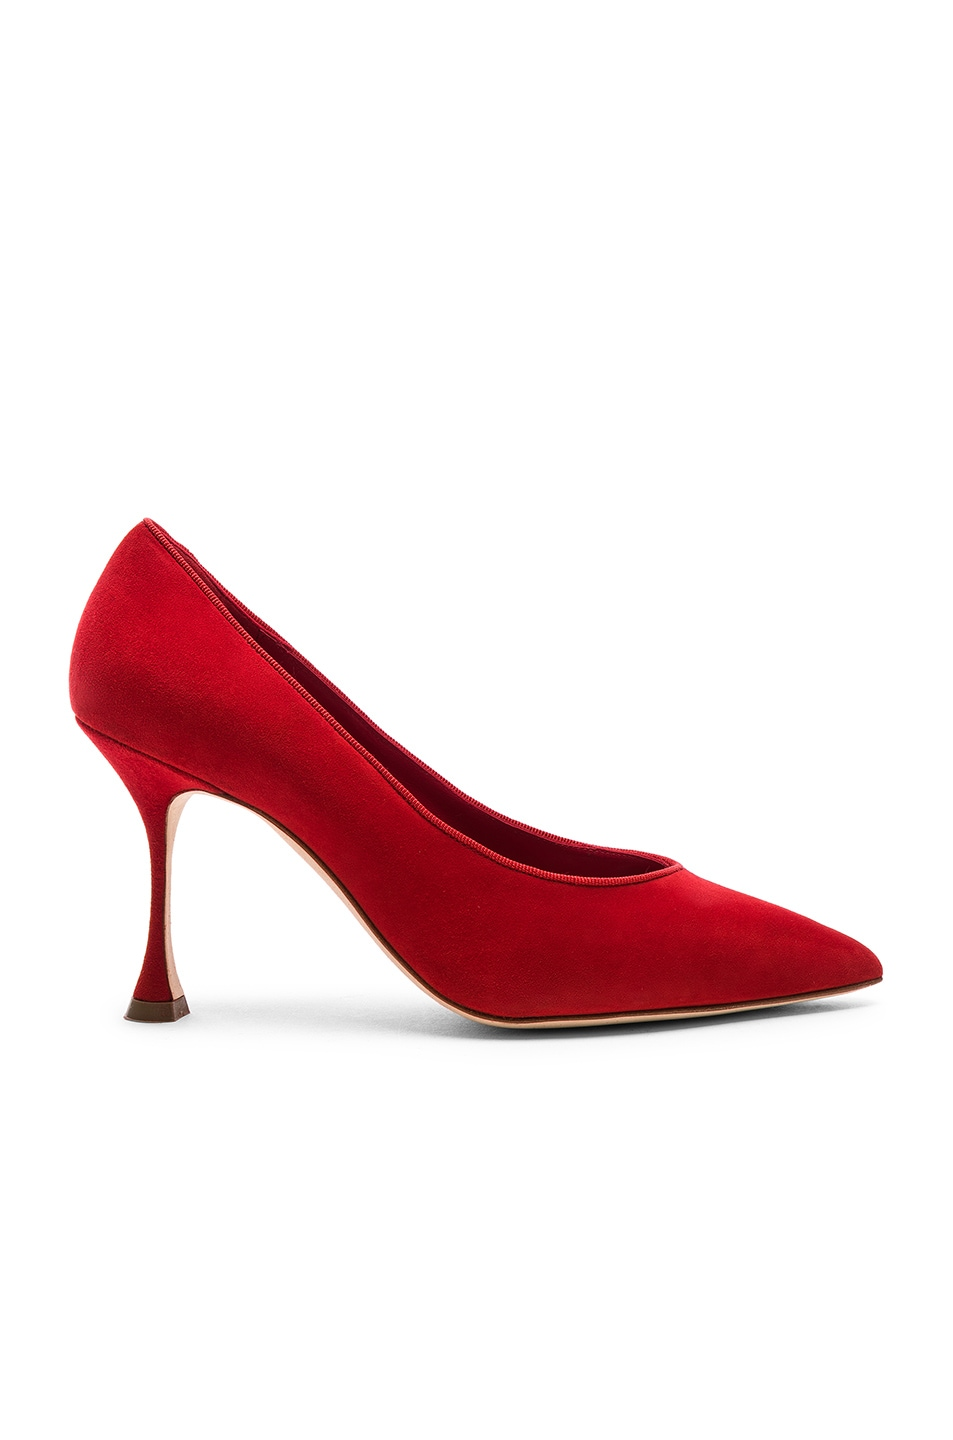 Image 1 of Manolo Blahnik Suede Urgenzapla Heels in Red